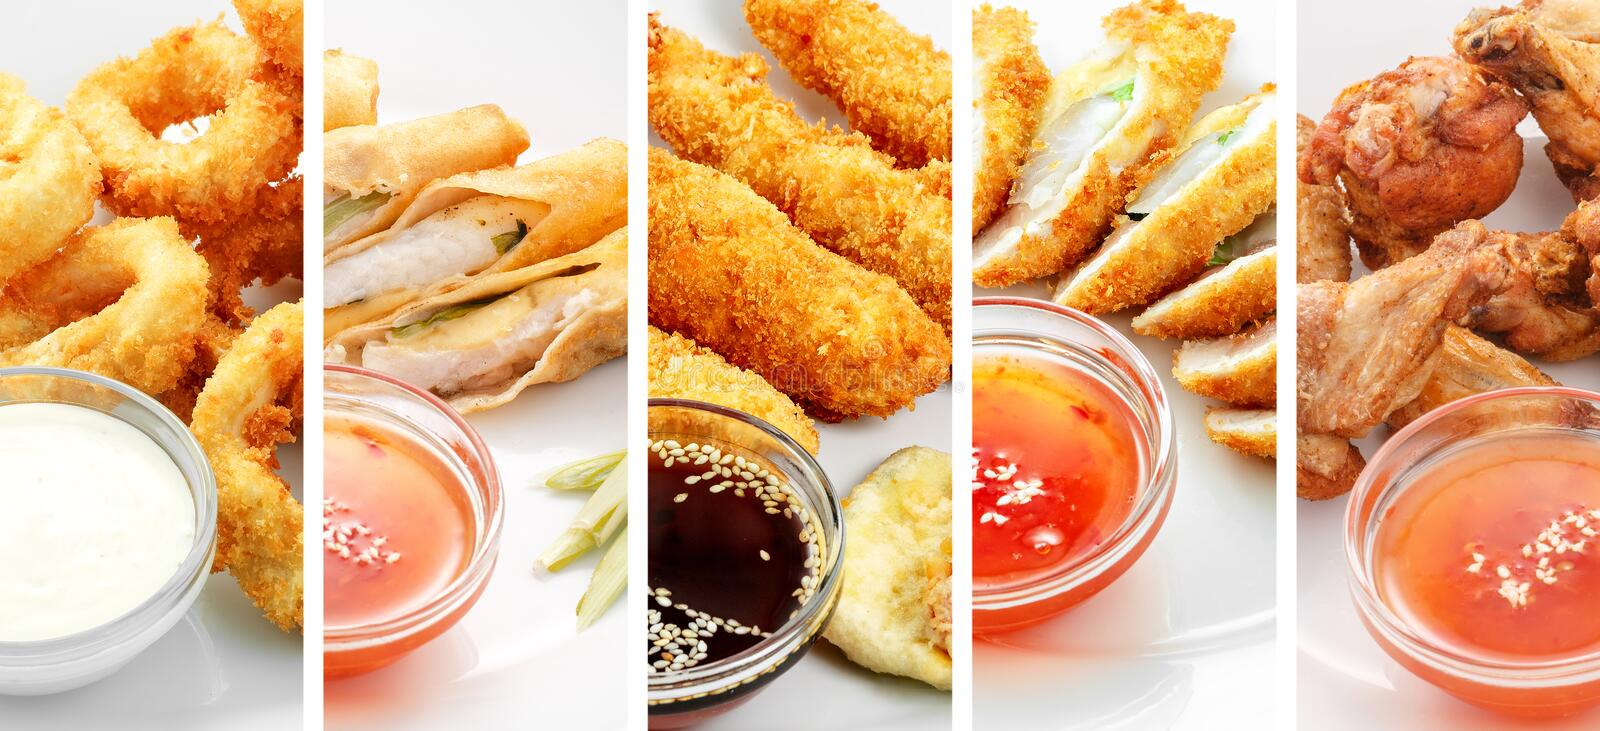 Collage of various fast food products on white background royalty free stock photo